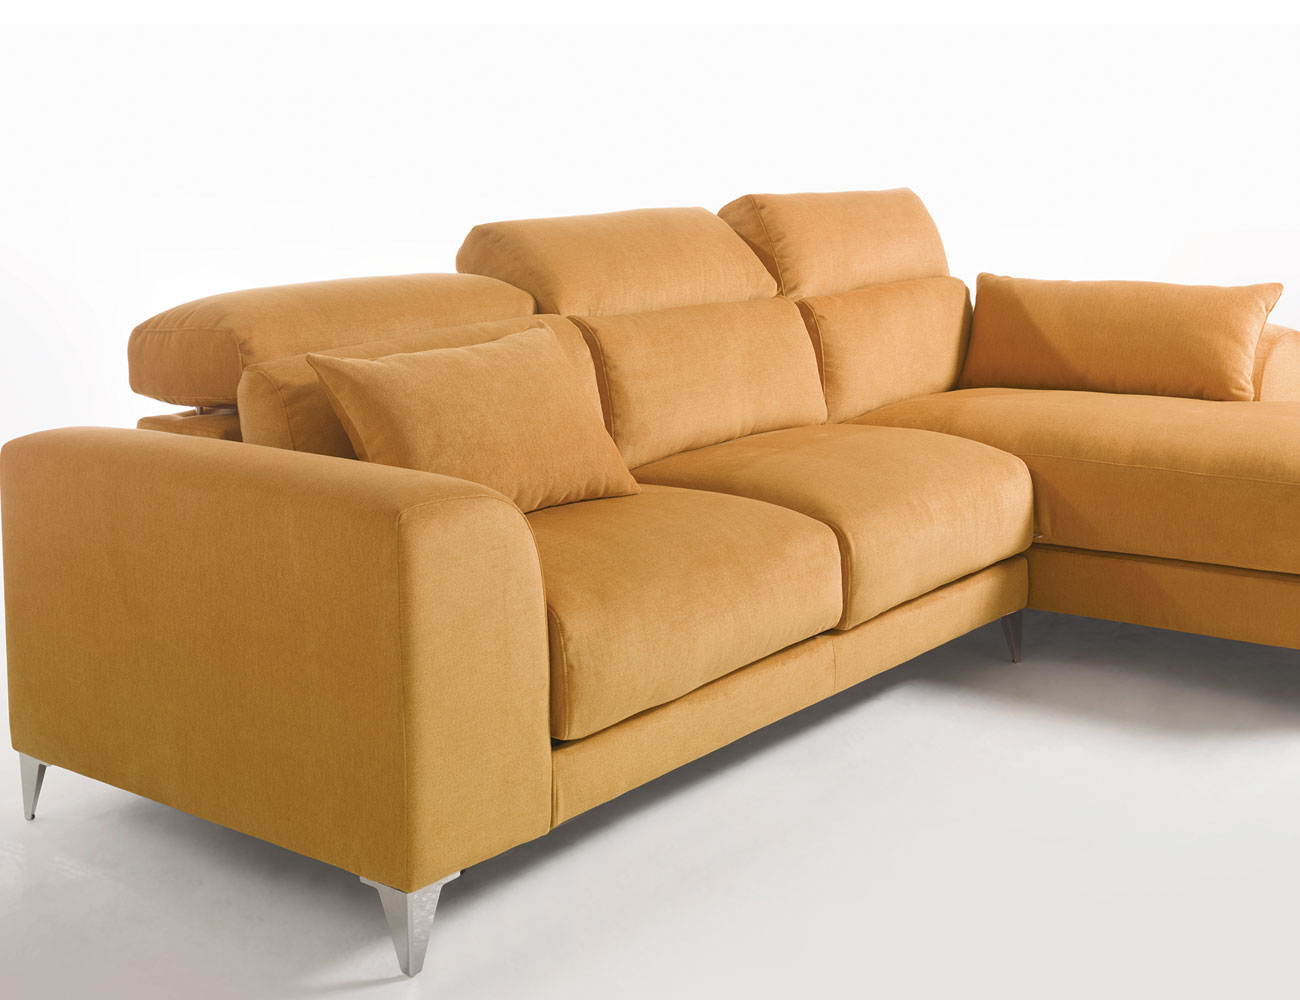 Sofa chaiselongue gran lujo decorativo patas altas amarillo 226